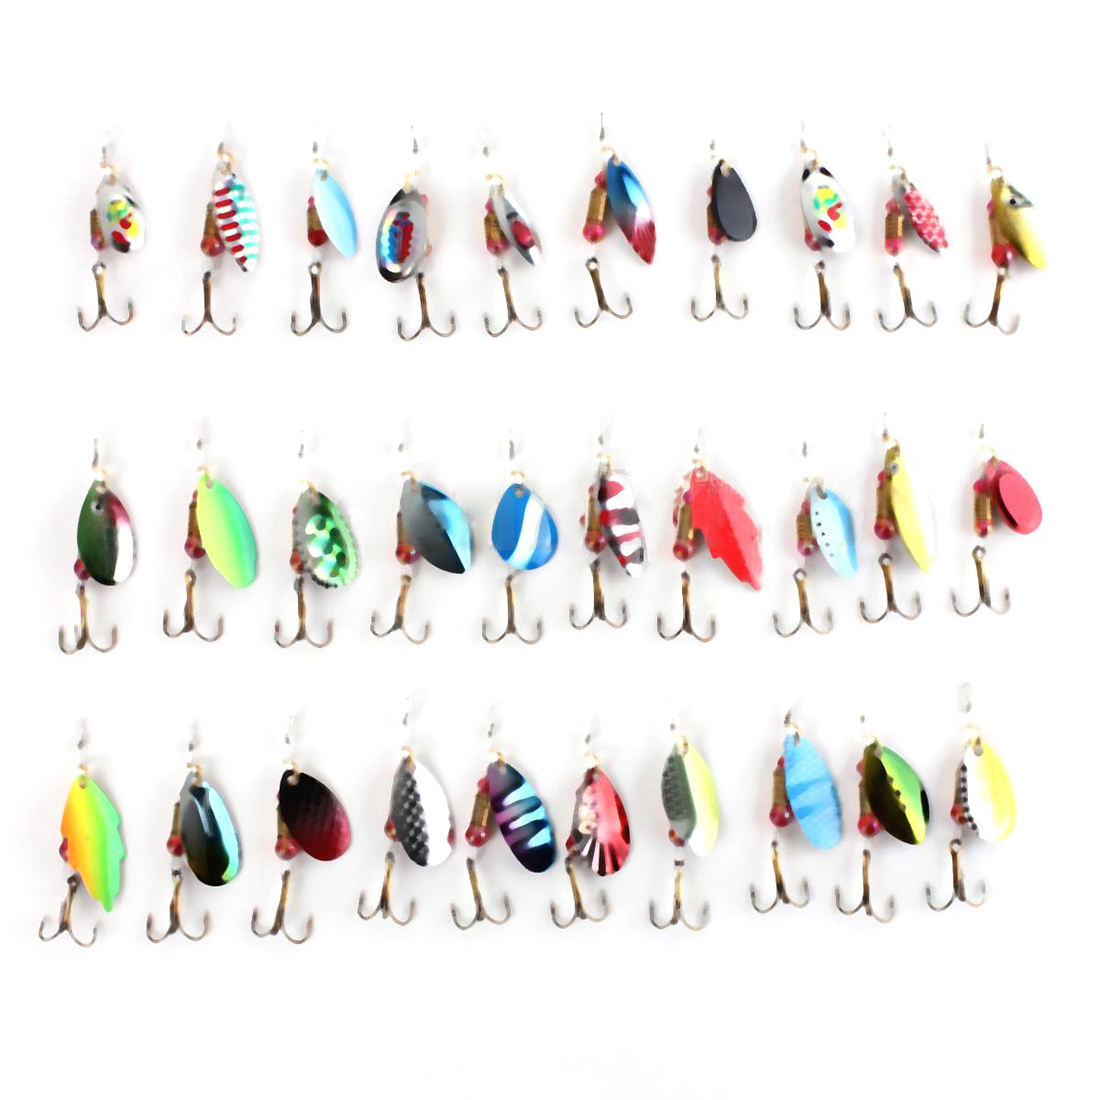 3 Pcs of (30pcs Assorted Fishing Lures Crankbaits Spinner Baits Hook Minnow Tackle USA)